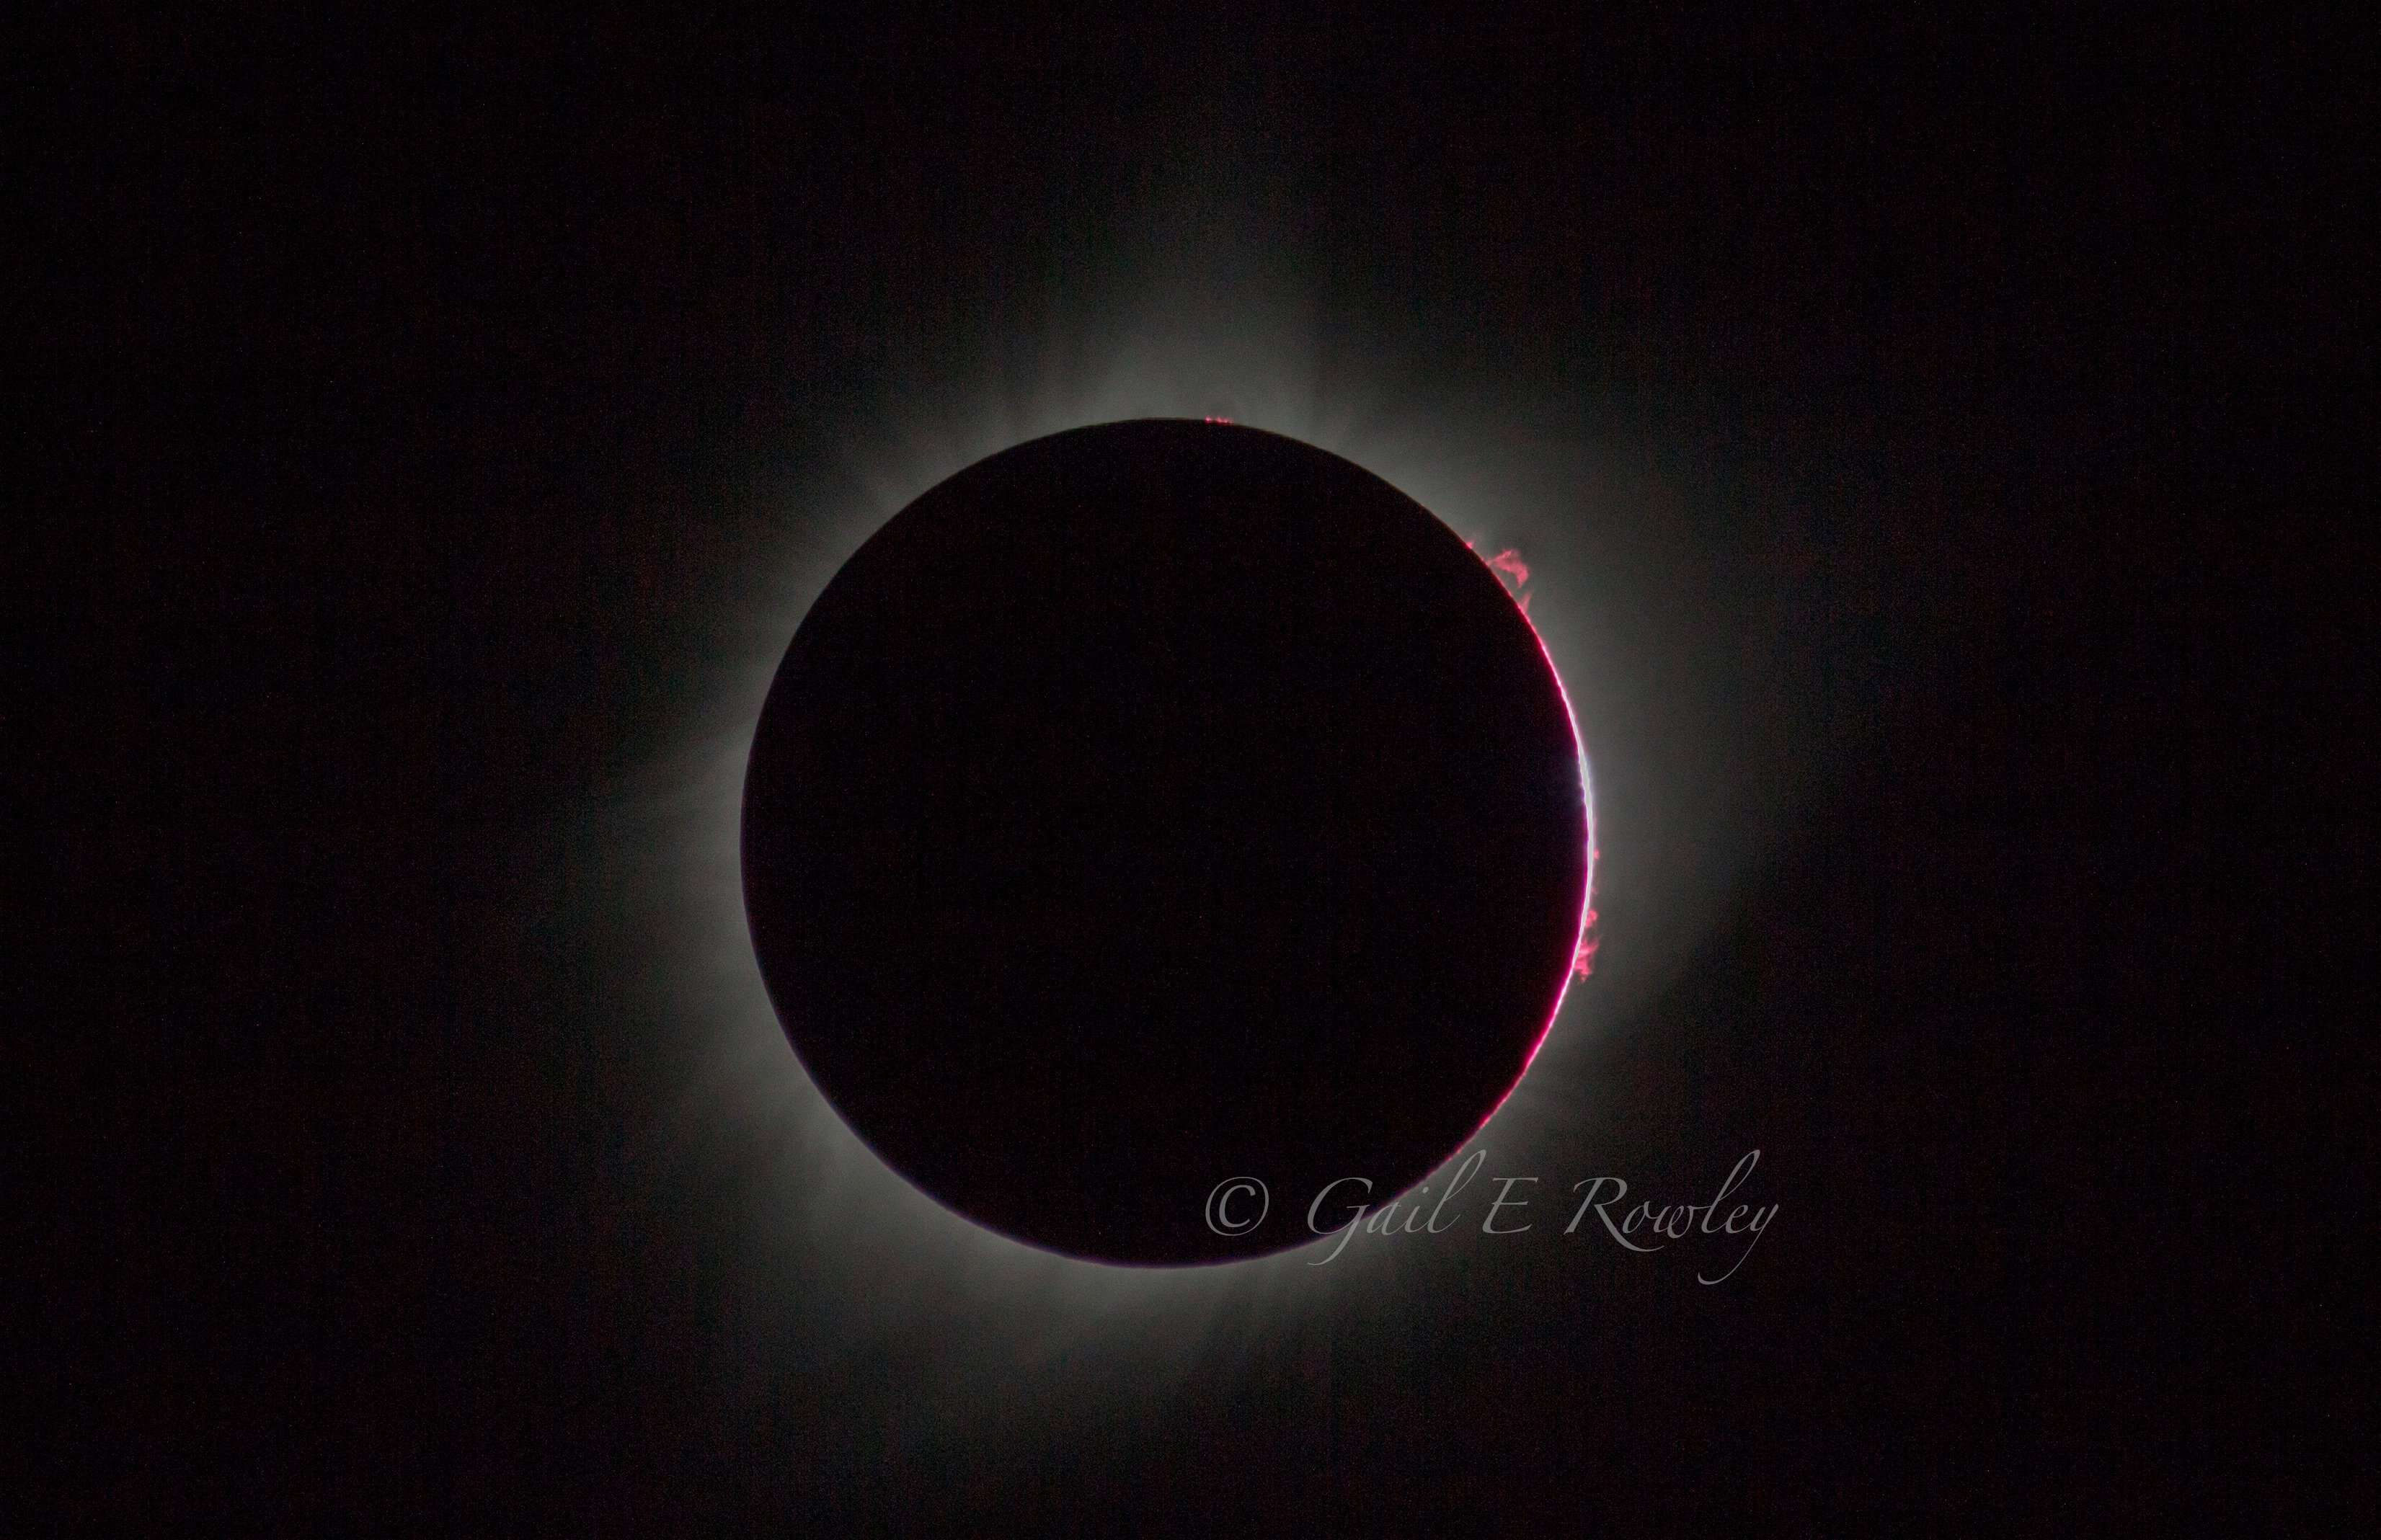 Total Solar Eclipse 2017 Prominences & Bailey's Beads photo taken by Gail E Rowley Ozark Stream Photography